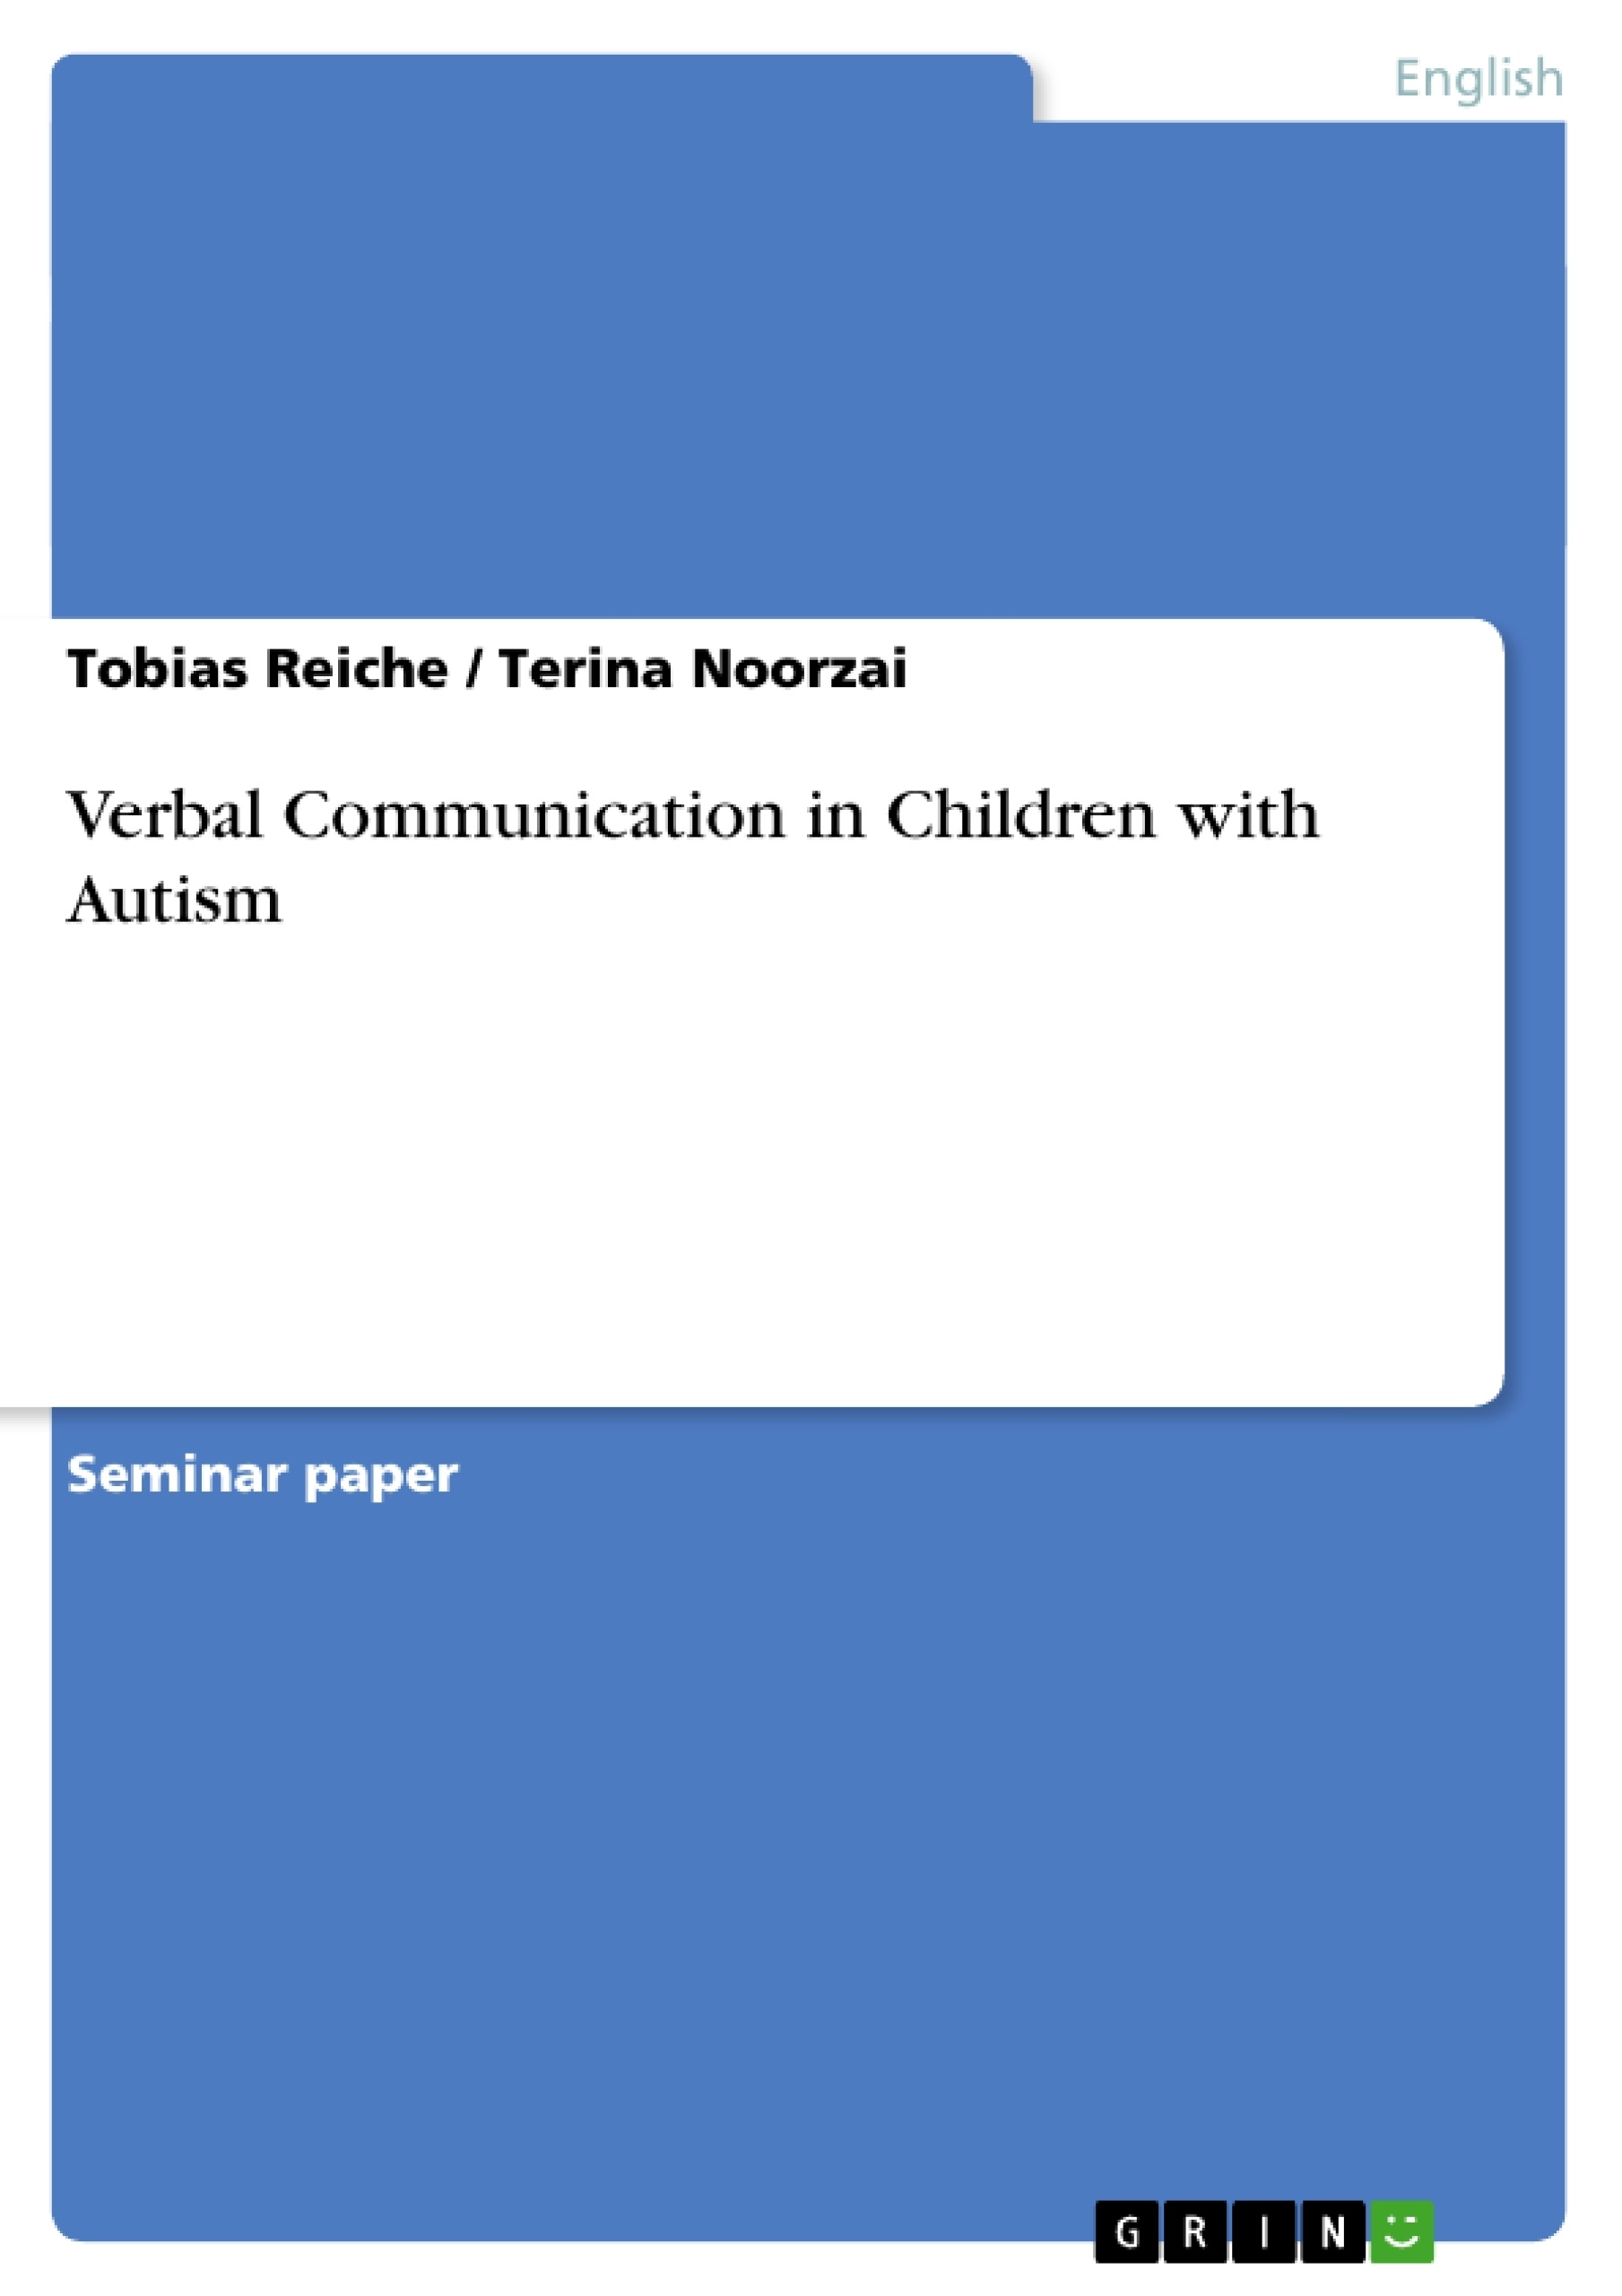 Title: Verbal Communication in Children with Autism